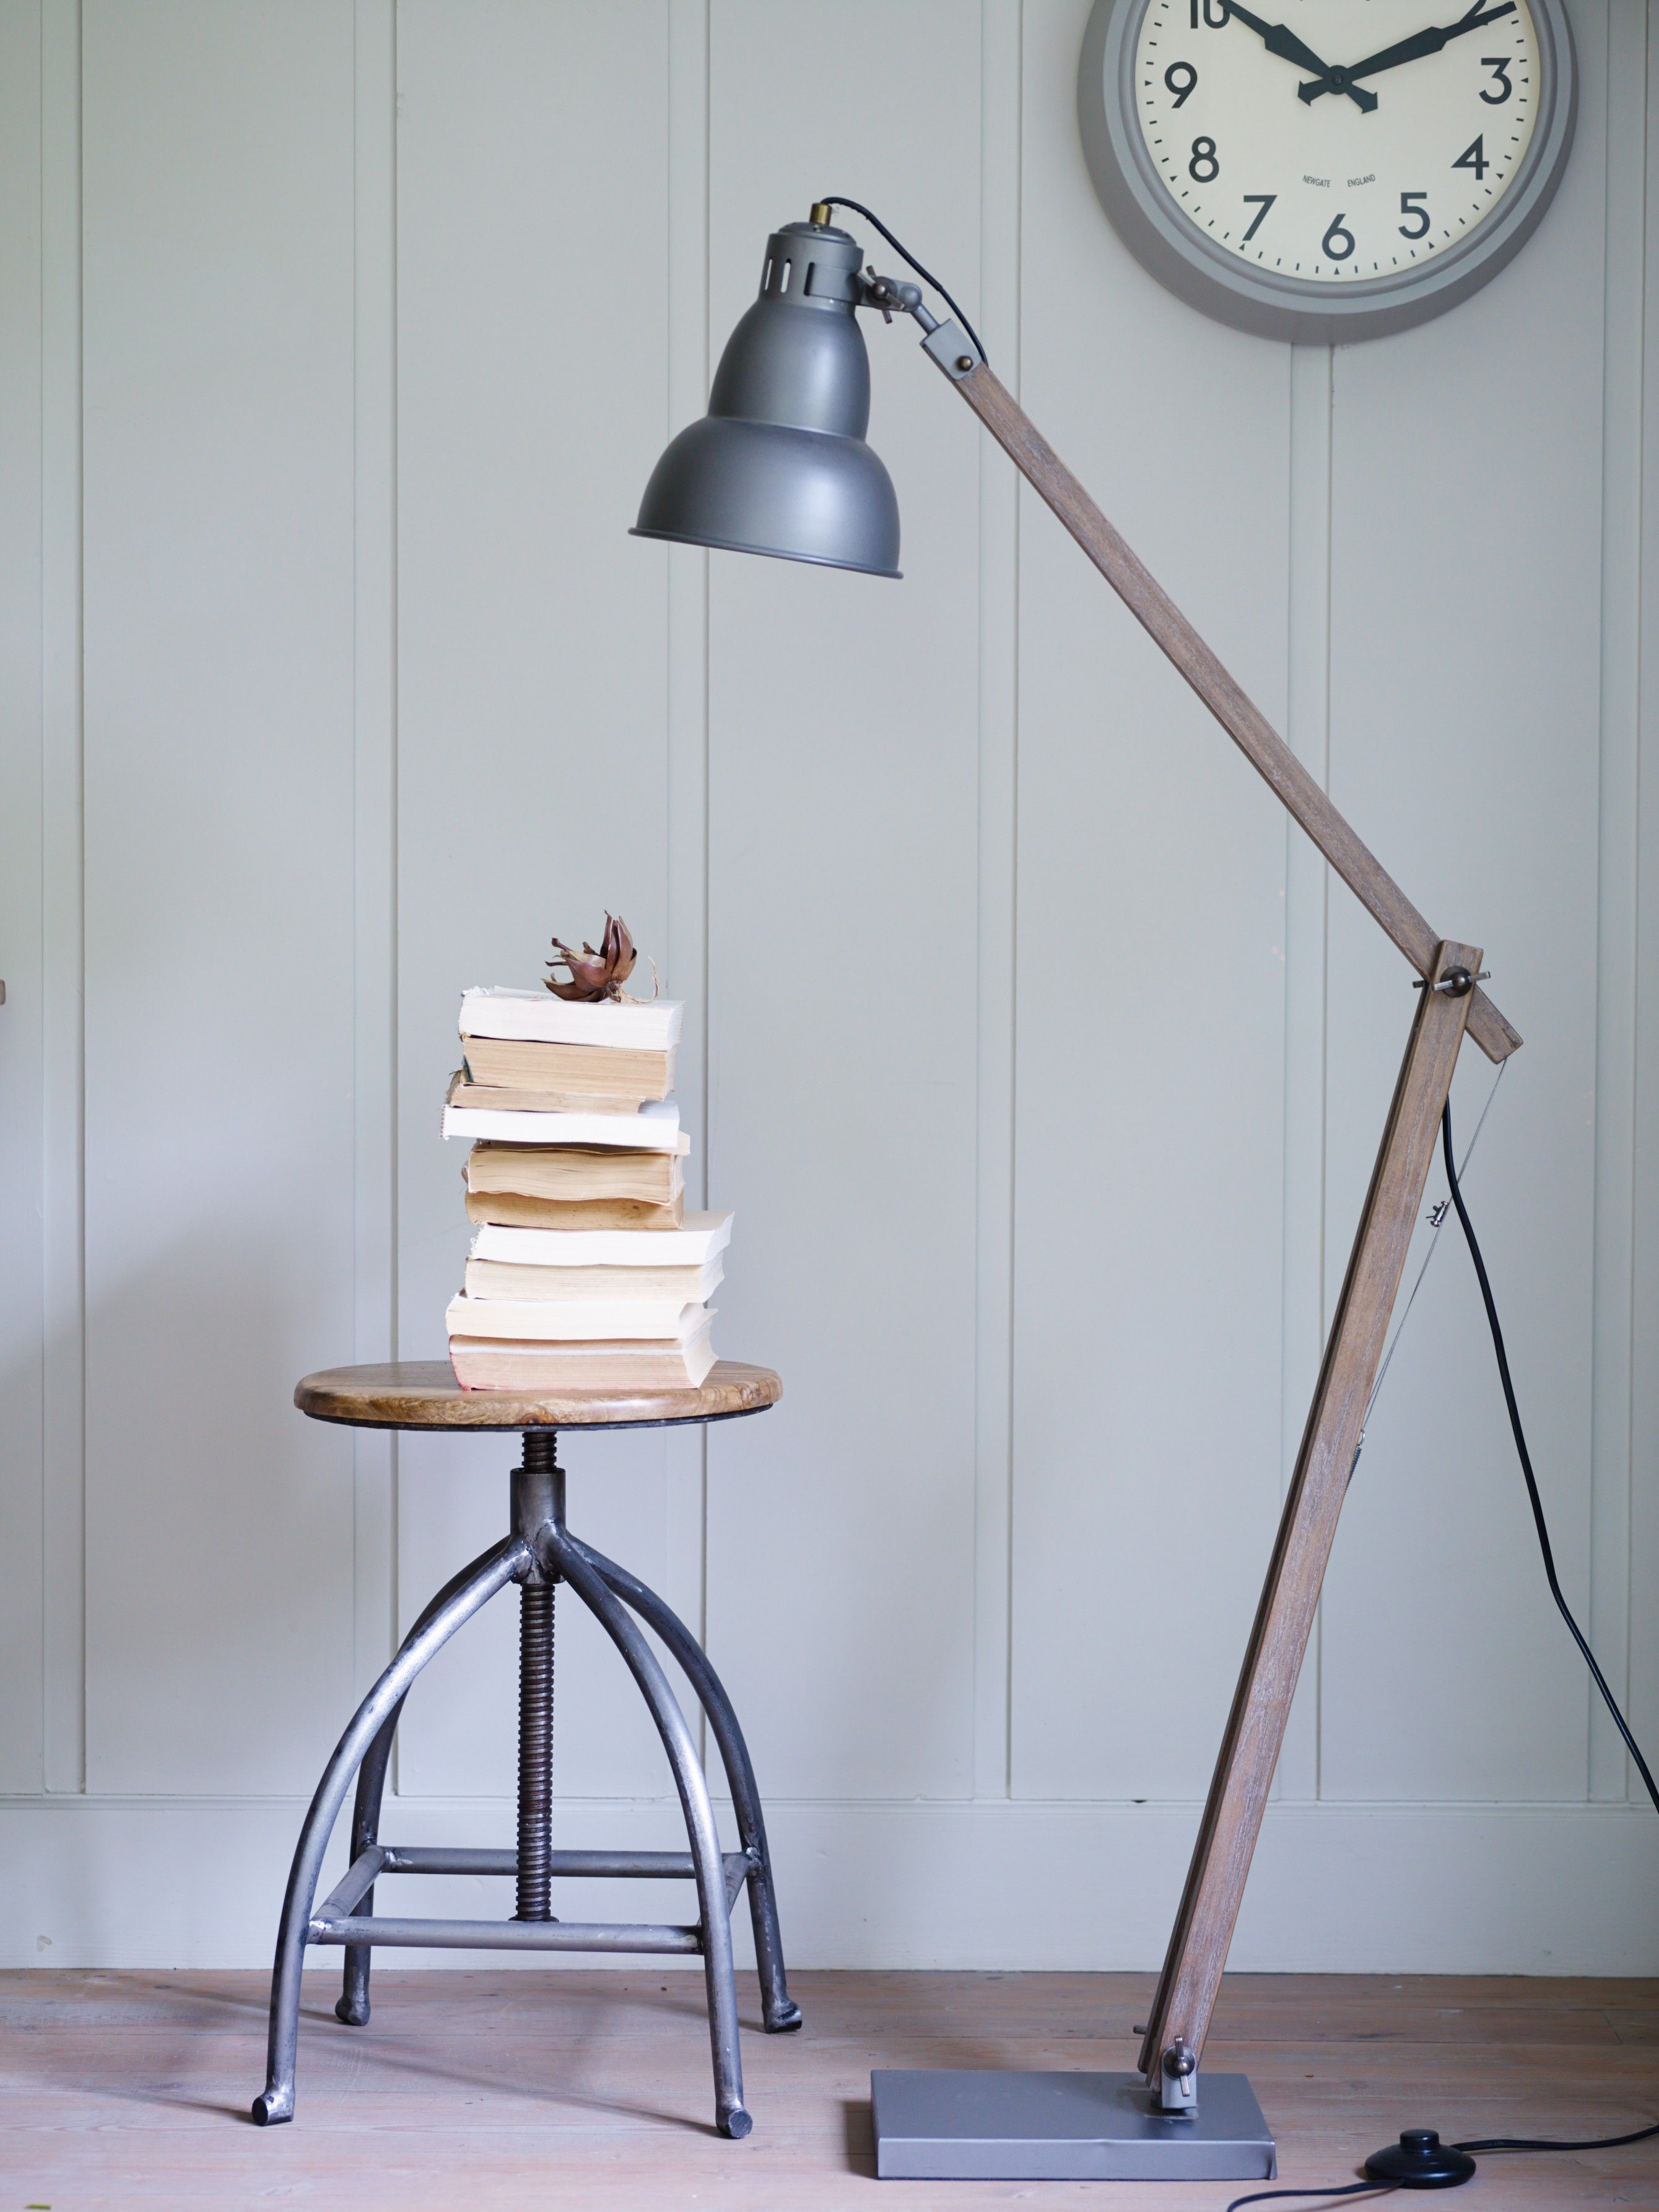 brand new daf92 190b7 Vintage Style Floor Lamp NEW - Lighting - Decorative Home ...